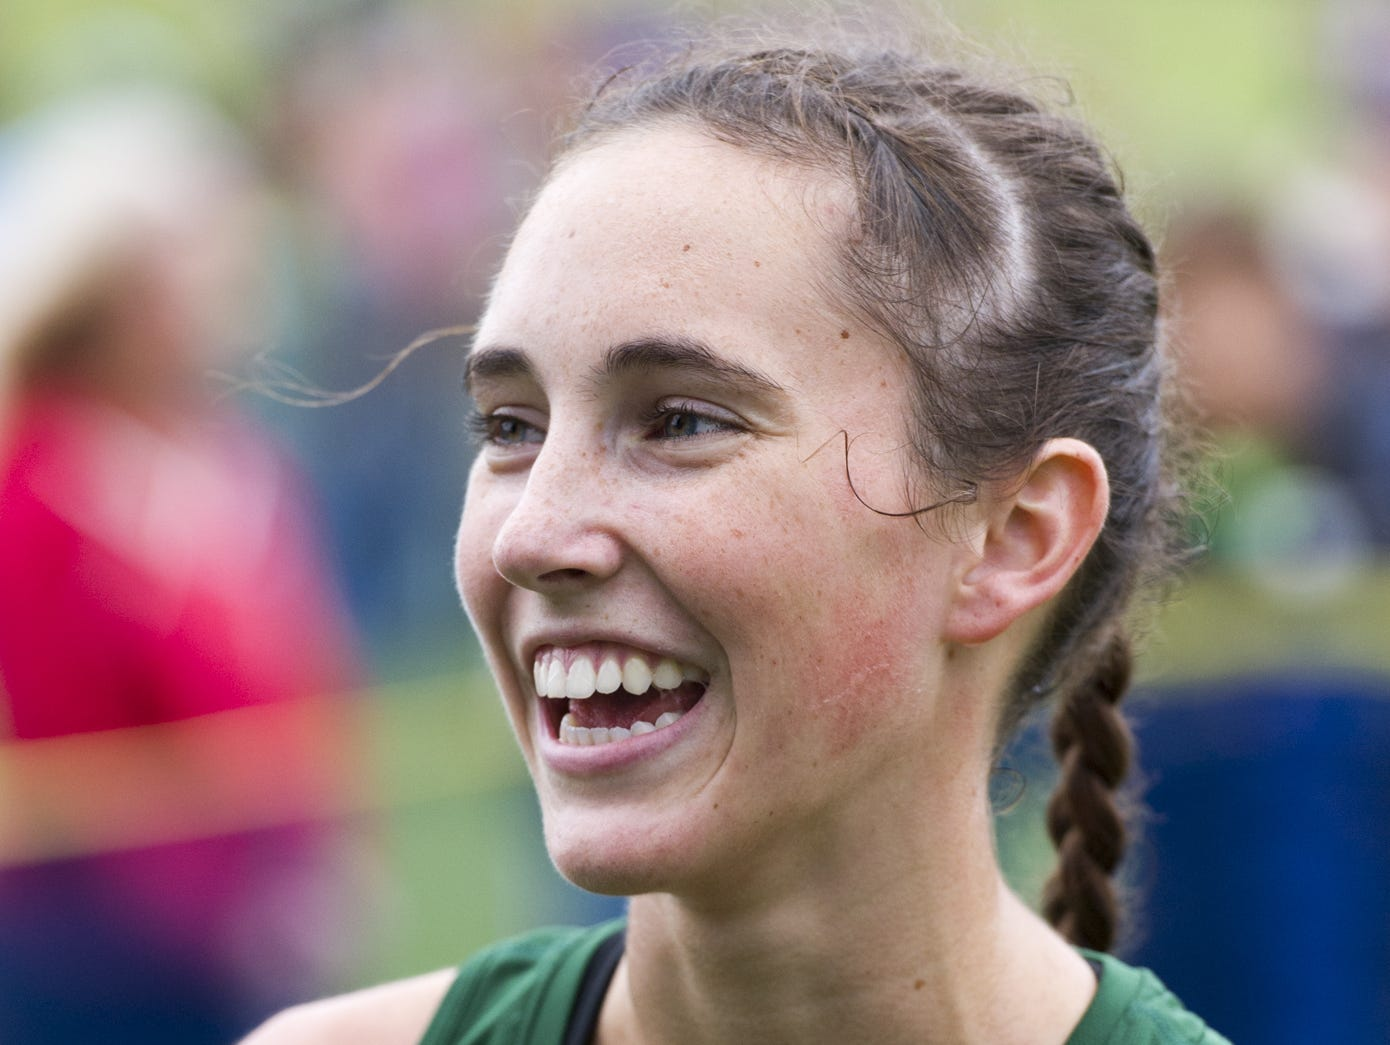 Pendleton Heights cross country runner Alex Buck is the September Marsh Athlete of the Month